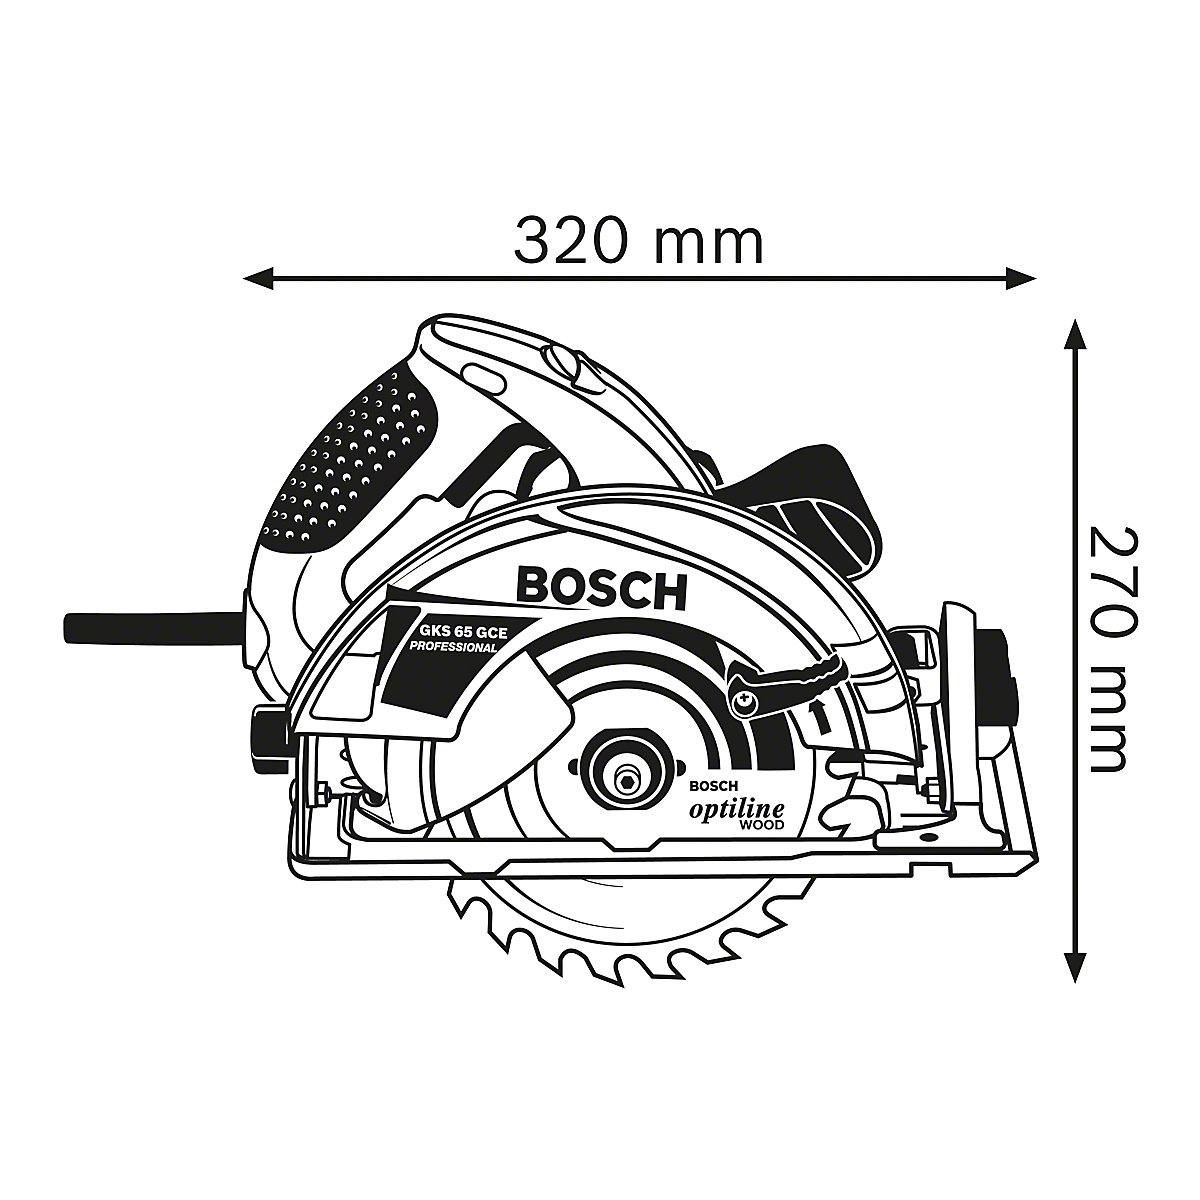 Bosch Gks 65 Gce Professional Hand Held Circular Saw In L Boxx With Dust Extraction Accessories Kaiser Kraft International